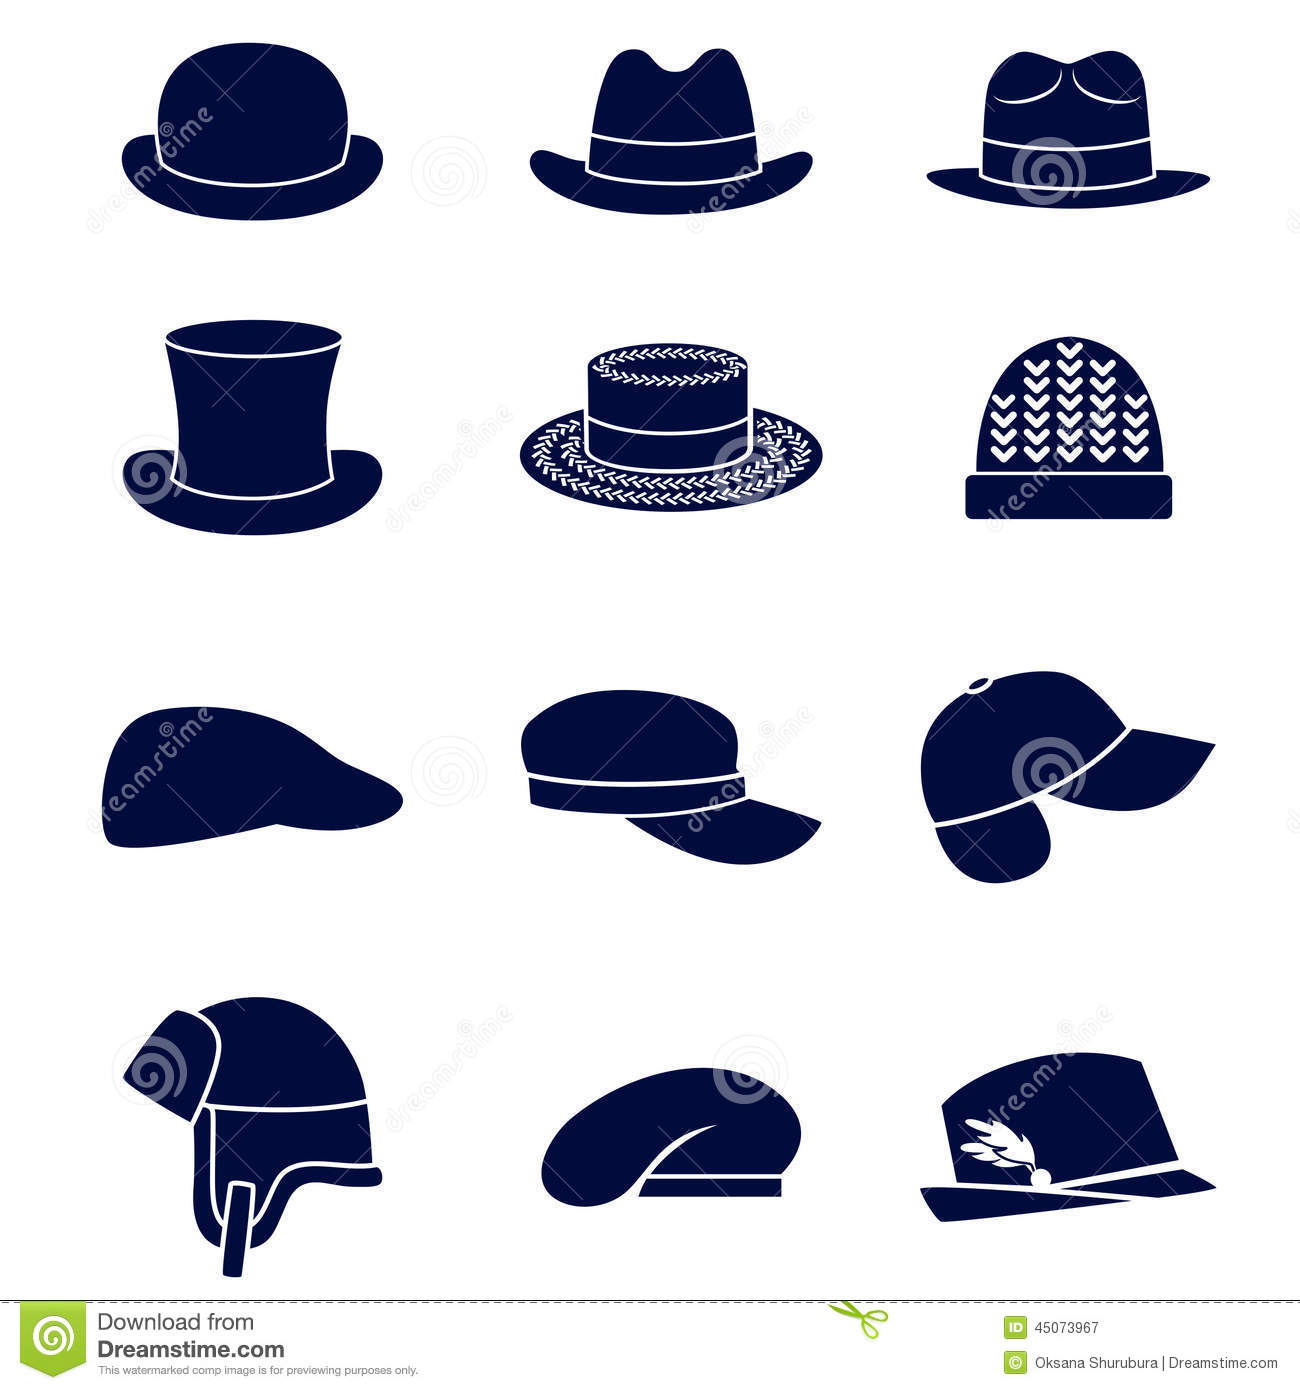 Different Types Of Men Hats Stock Vector - Illustration of hats ... 6c9f2d61c2ef